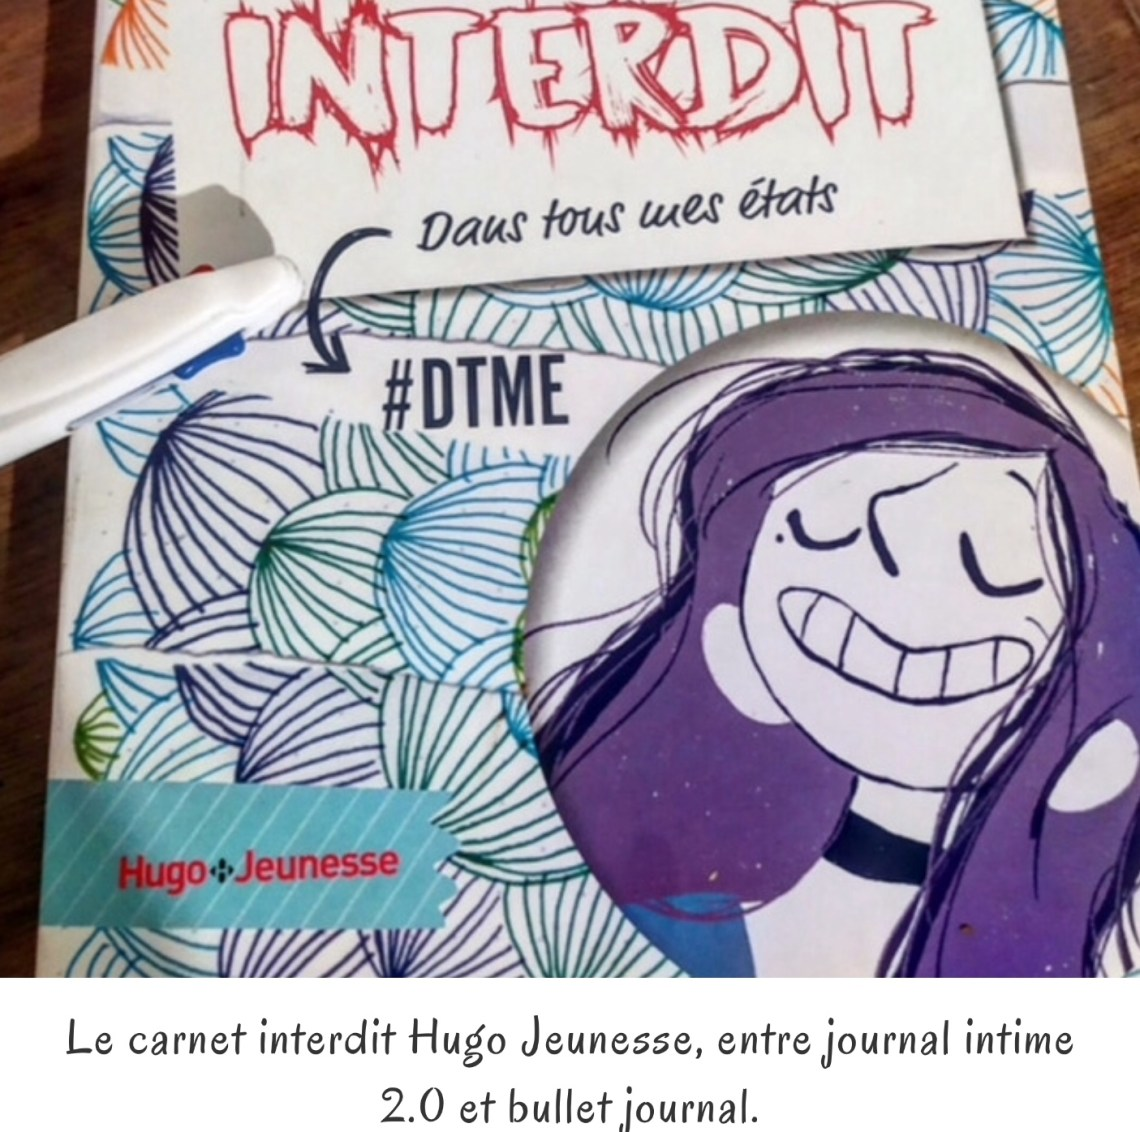 Le carnet interdit Hugo Jeunesse, entre journal intime 2.0 et bullet journal.